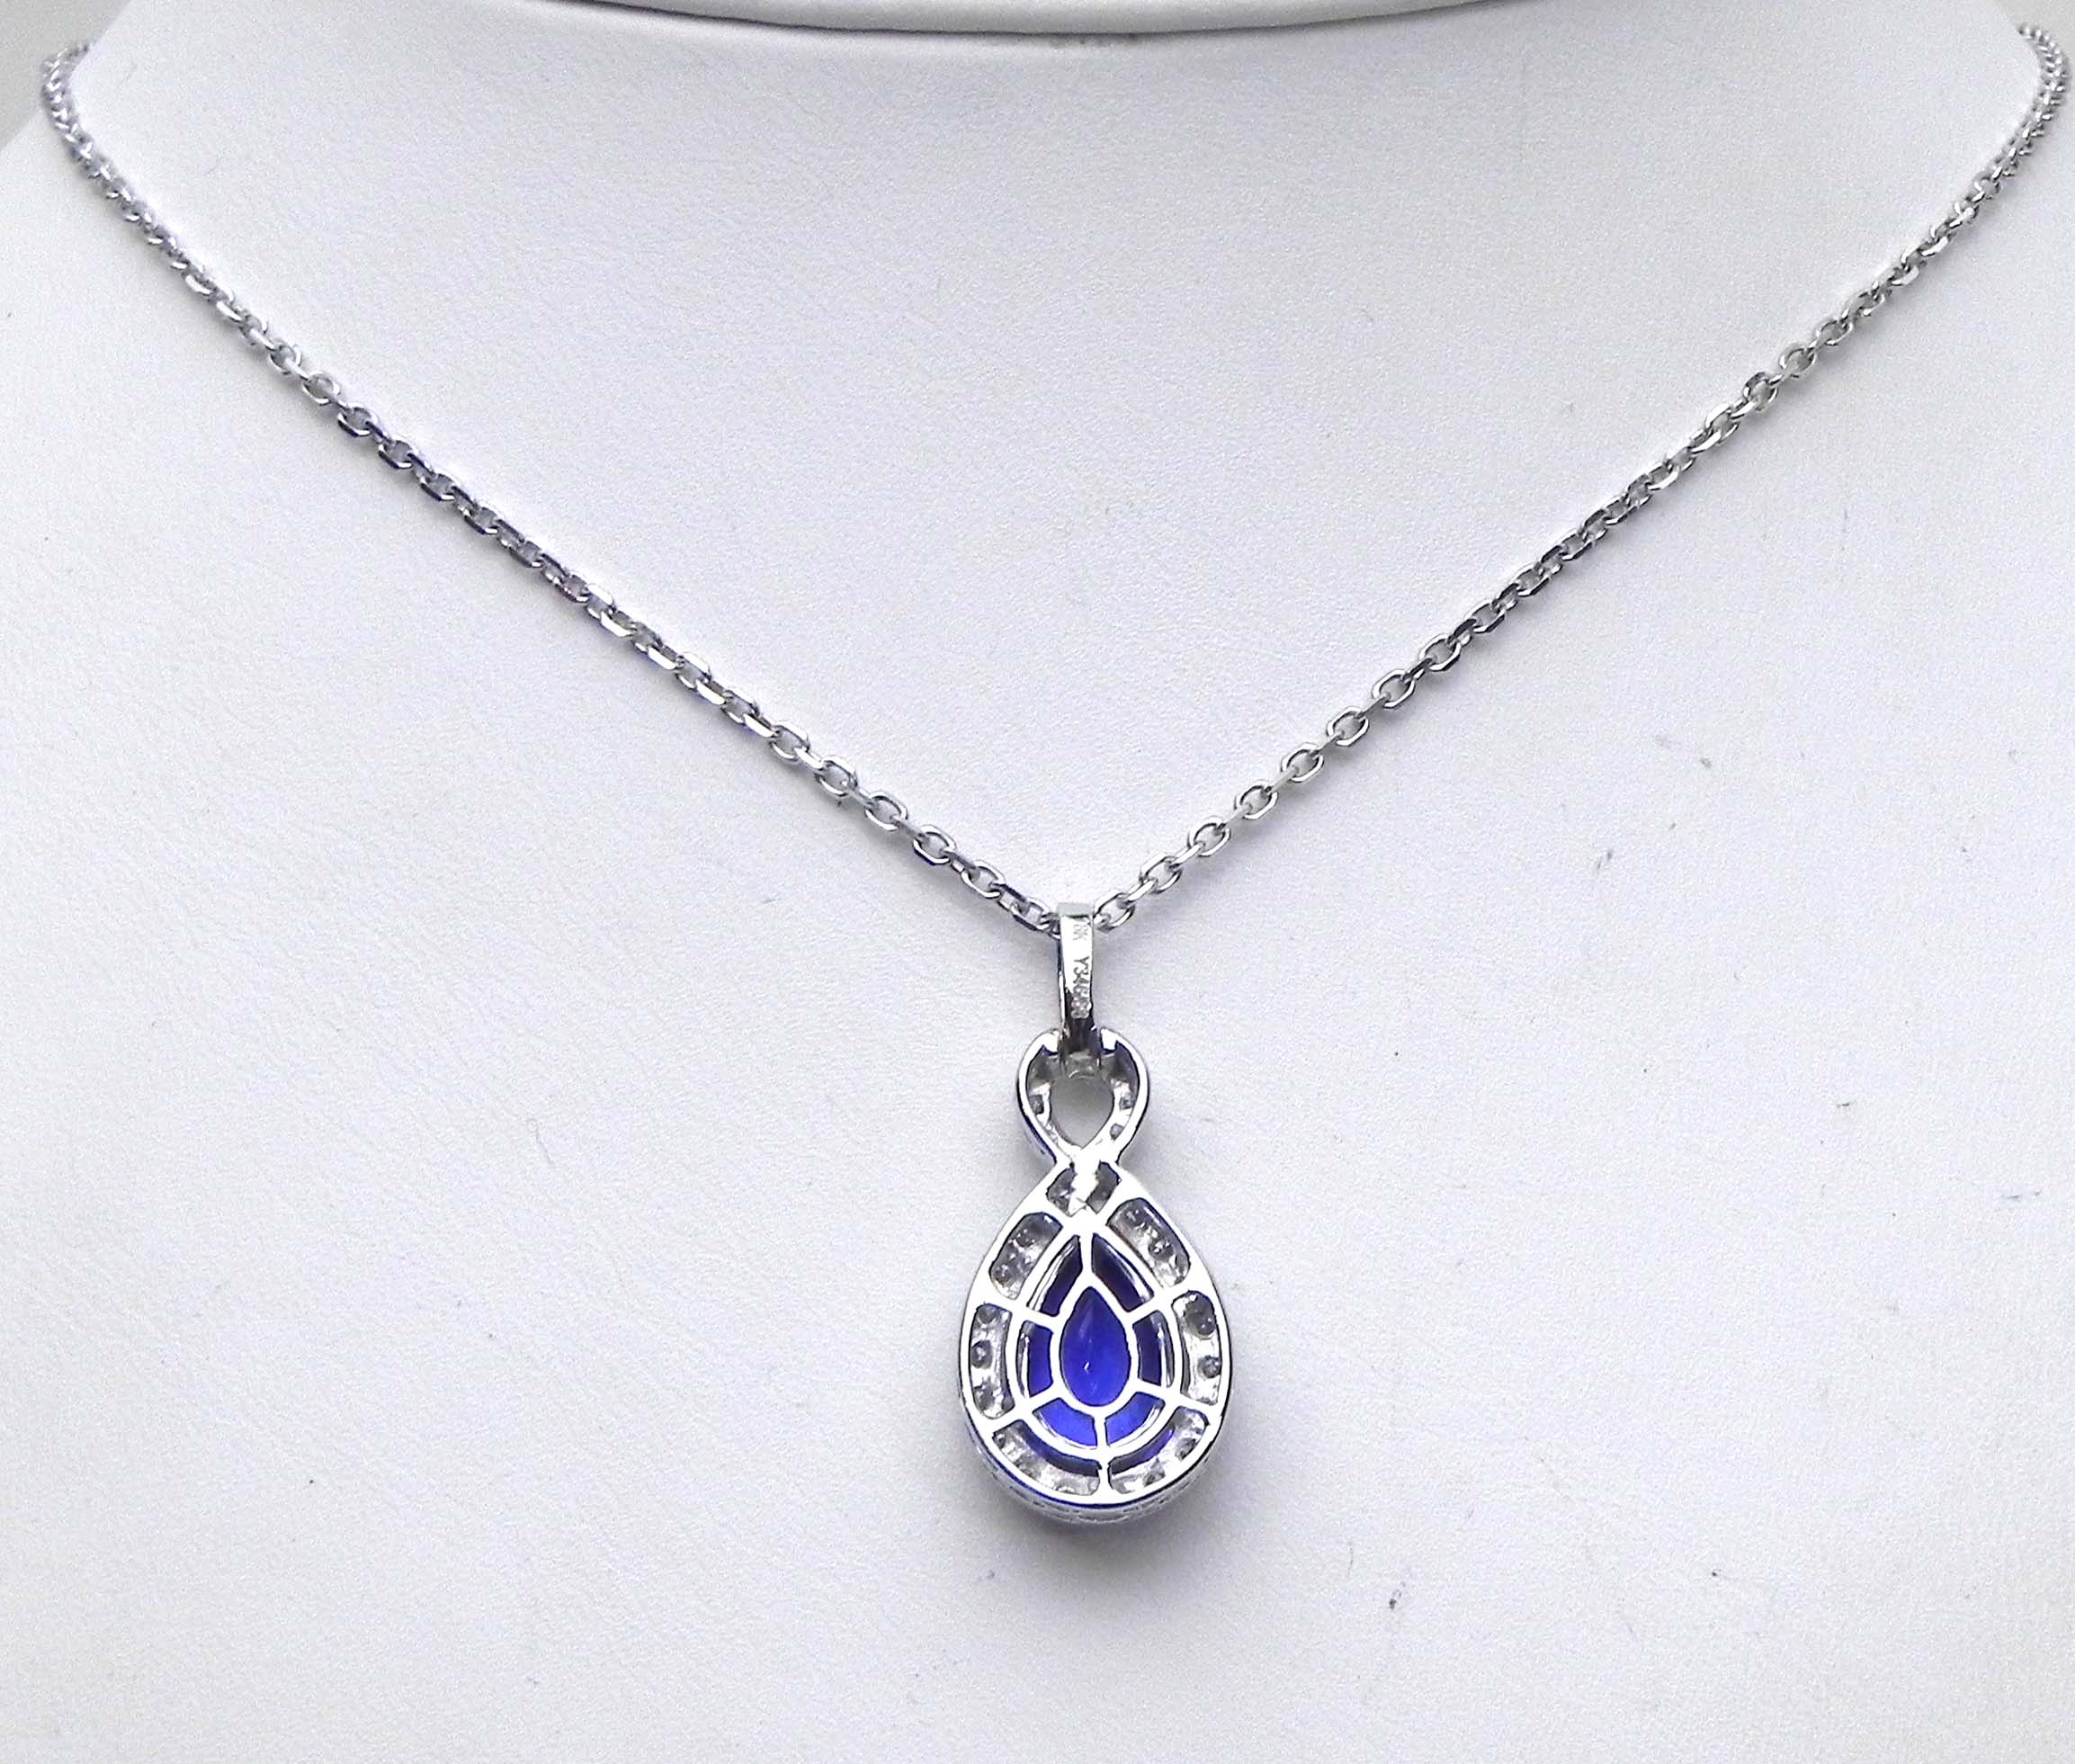 natural nacklace birthstone december necklace tanzanite healing dainty gemstone cjrc listing layering boho il fullxfull